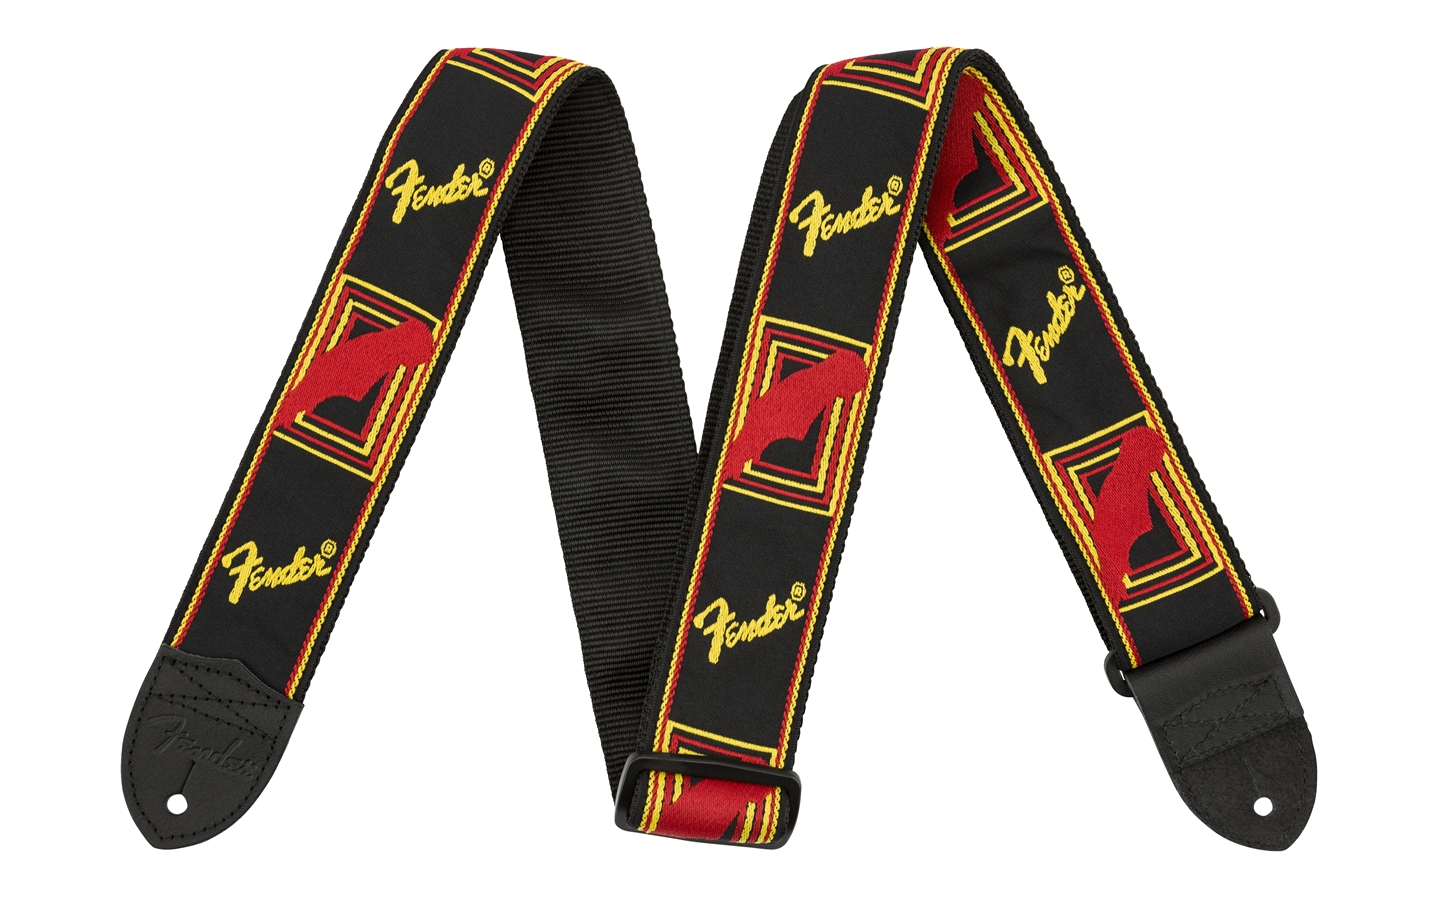 Fender 2 Monogrammed Strap Black/Yellow/Red